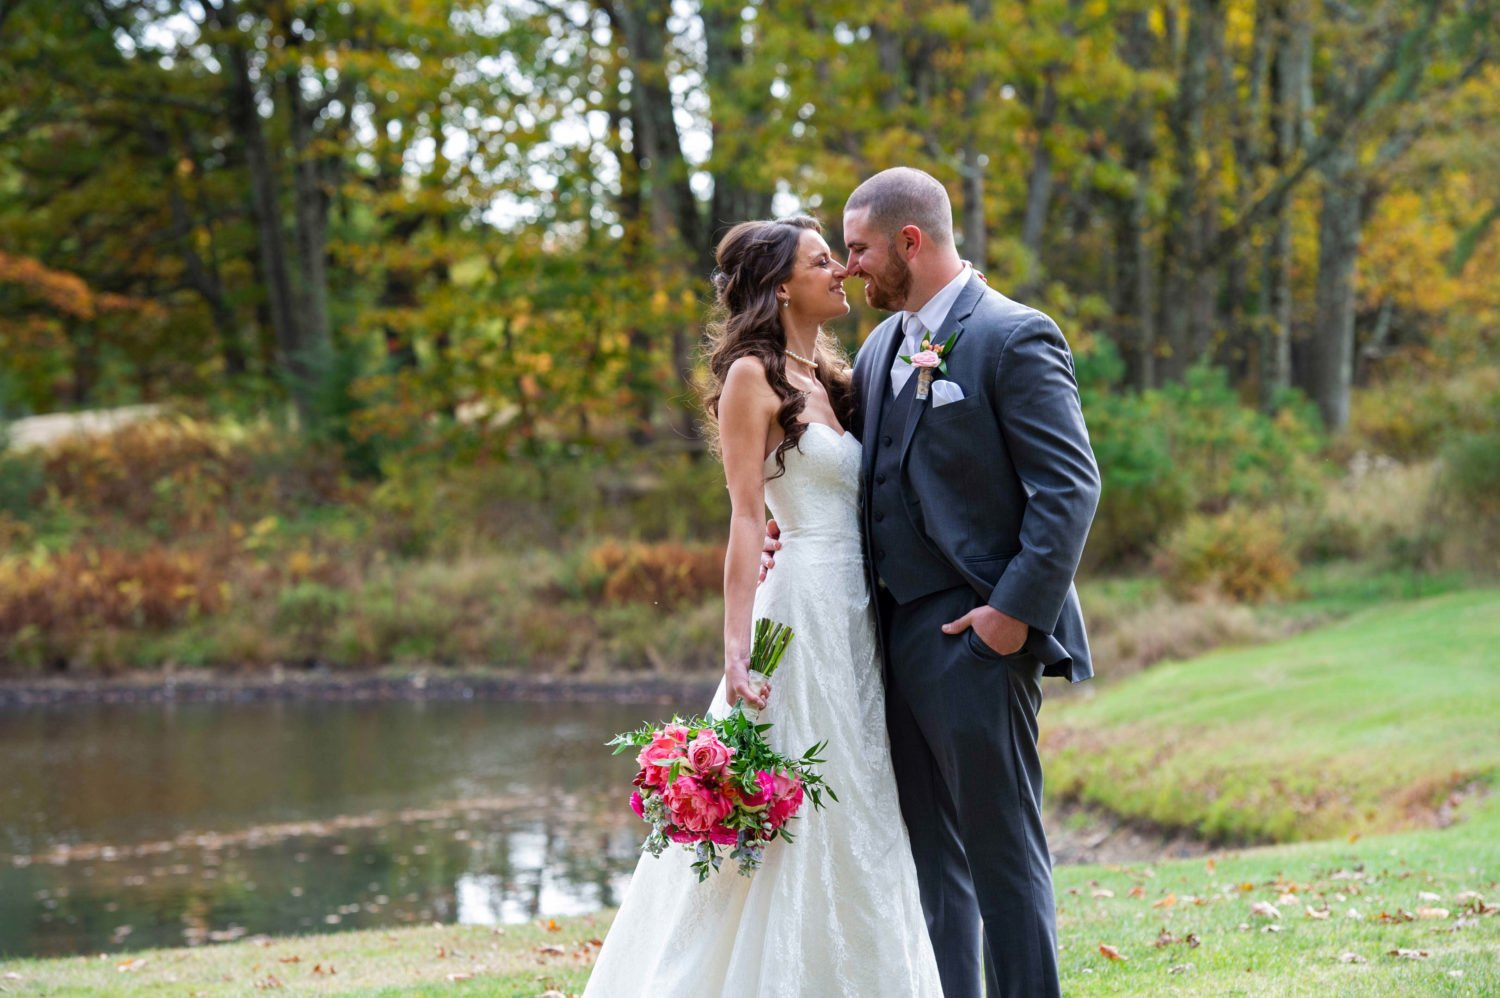 Pocono Manor Wedding - Pocono Summit, PA